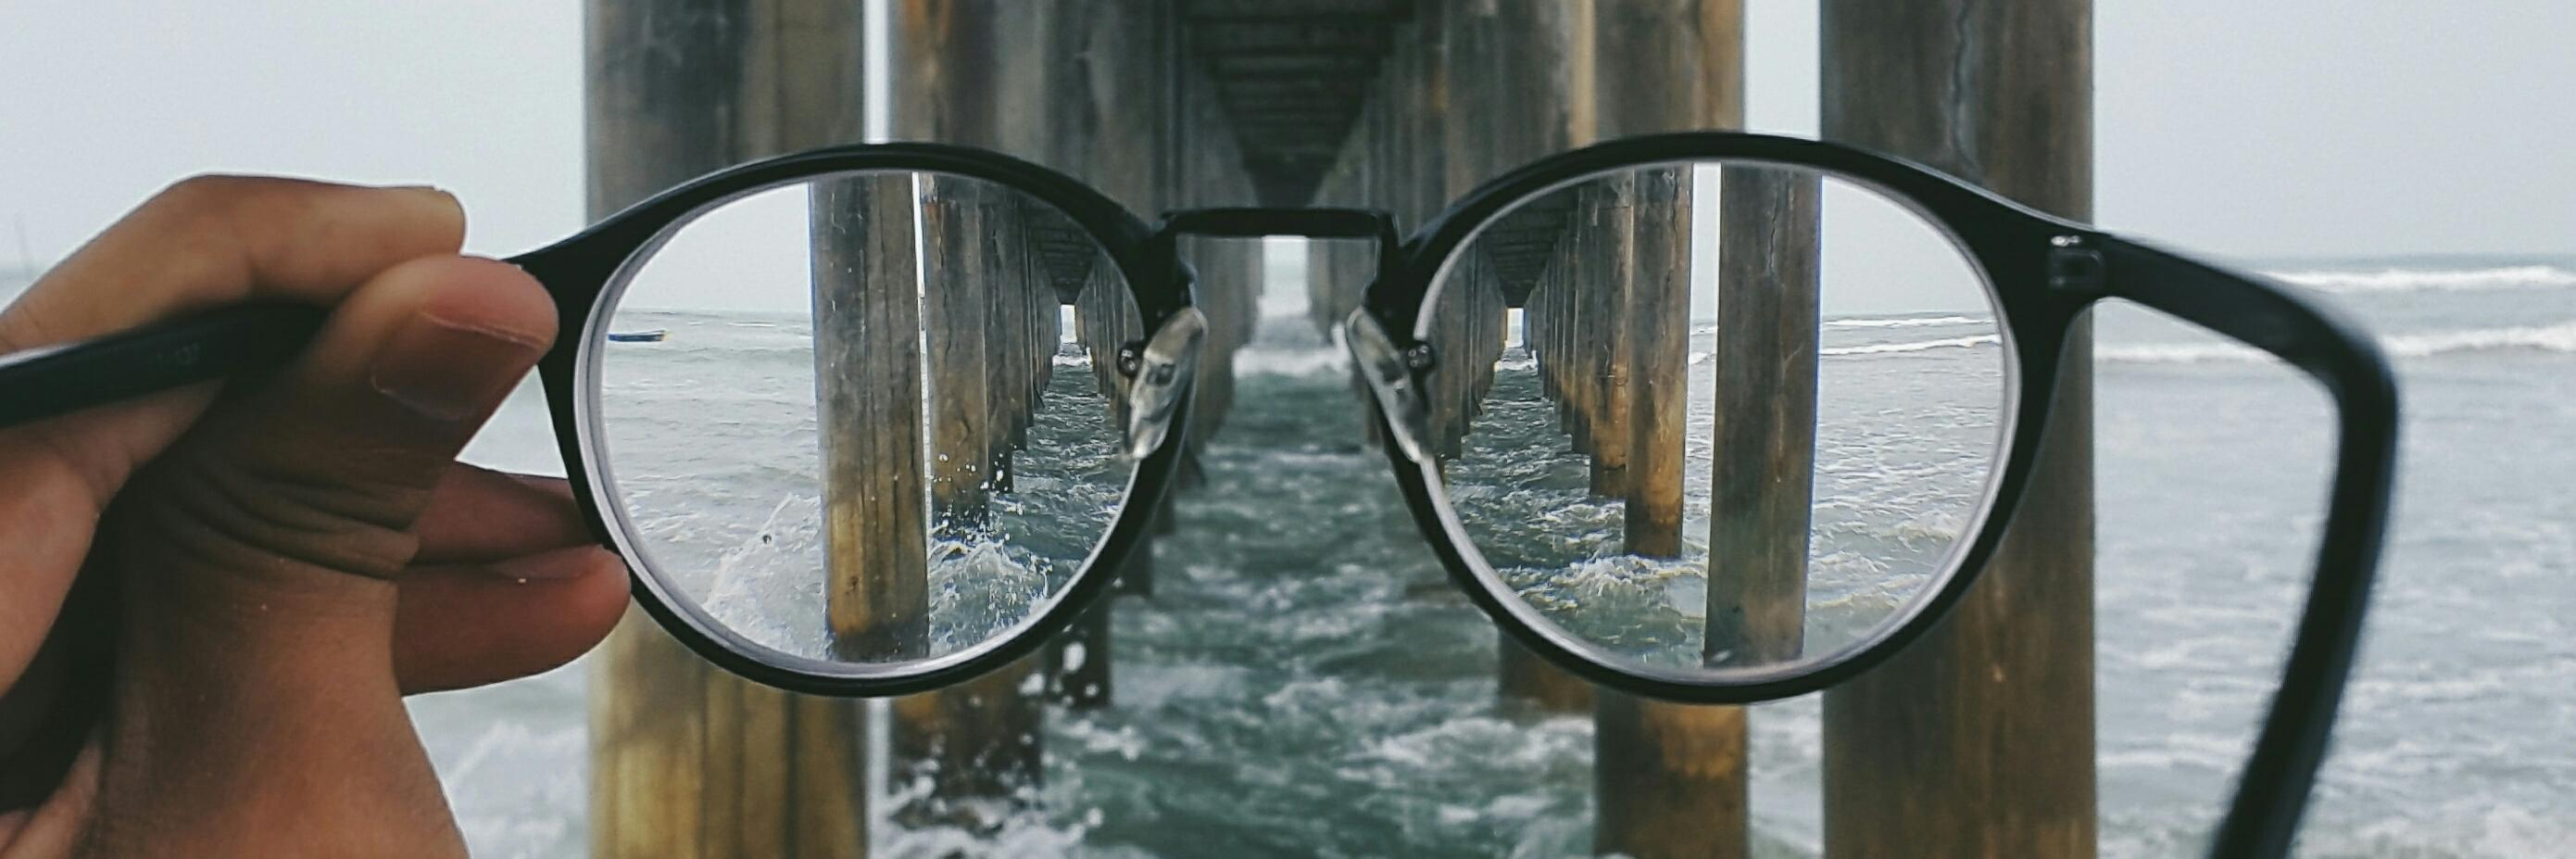 Looking through glass lenses at the underside of a dock in water